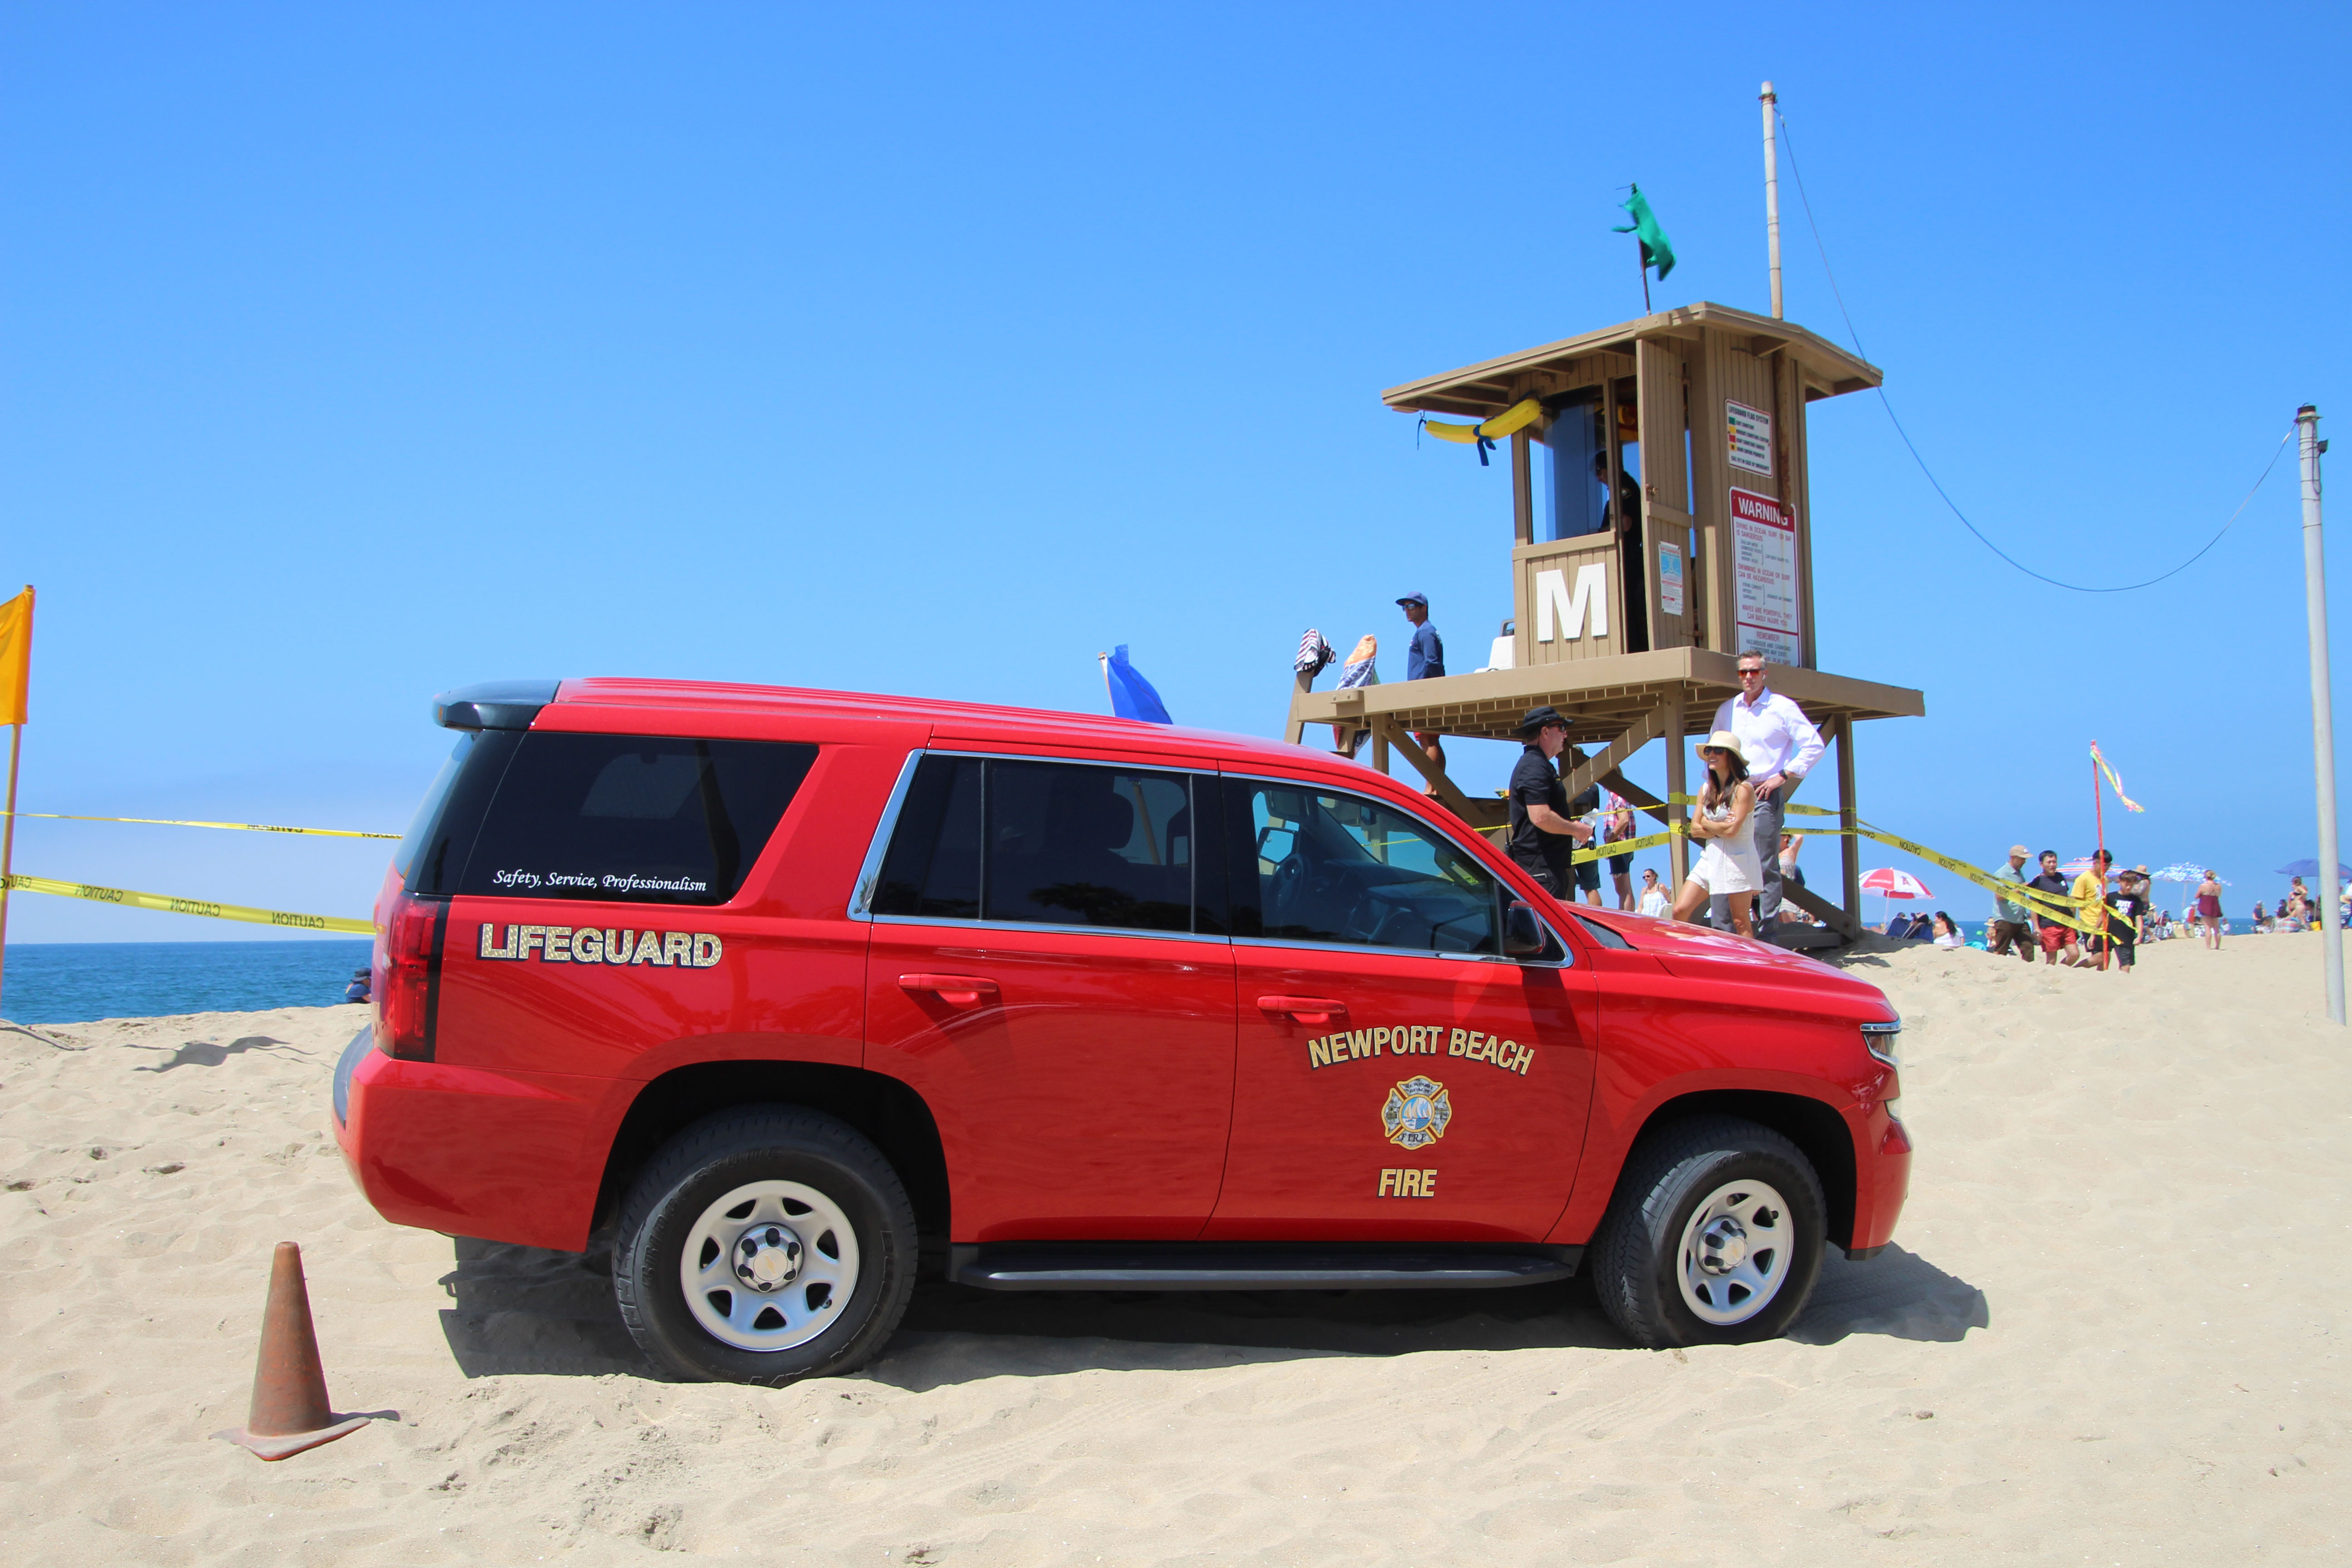 Police Files Lifeguard truck in sand